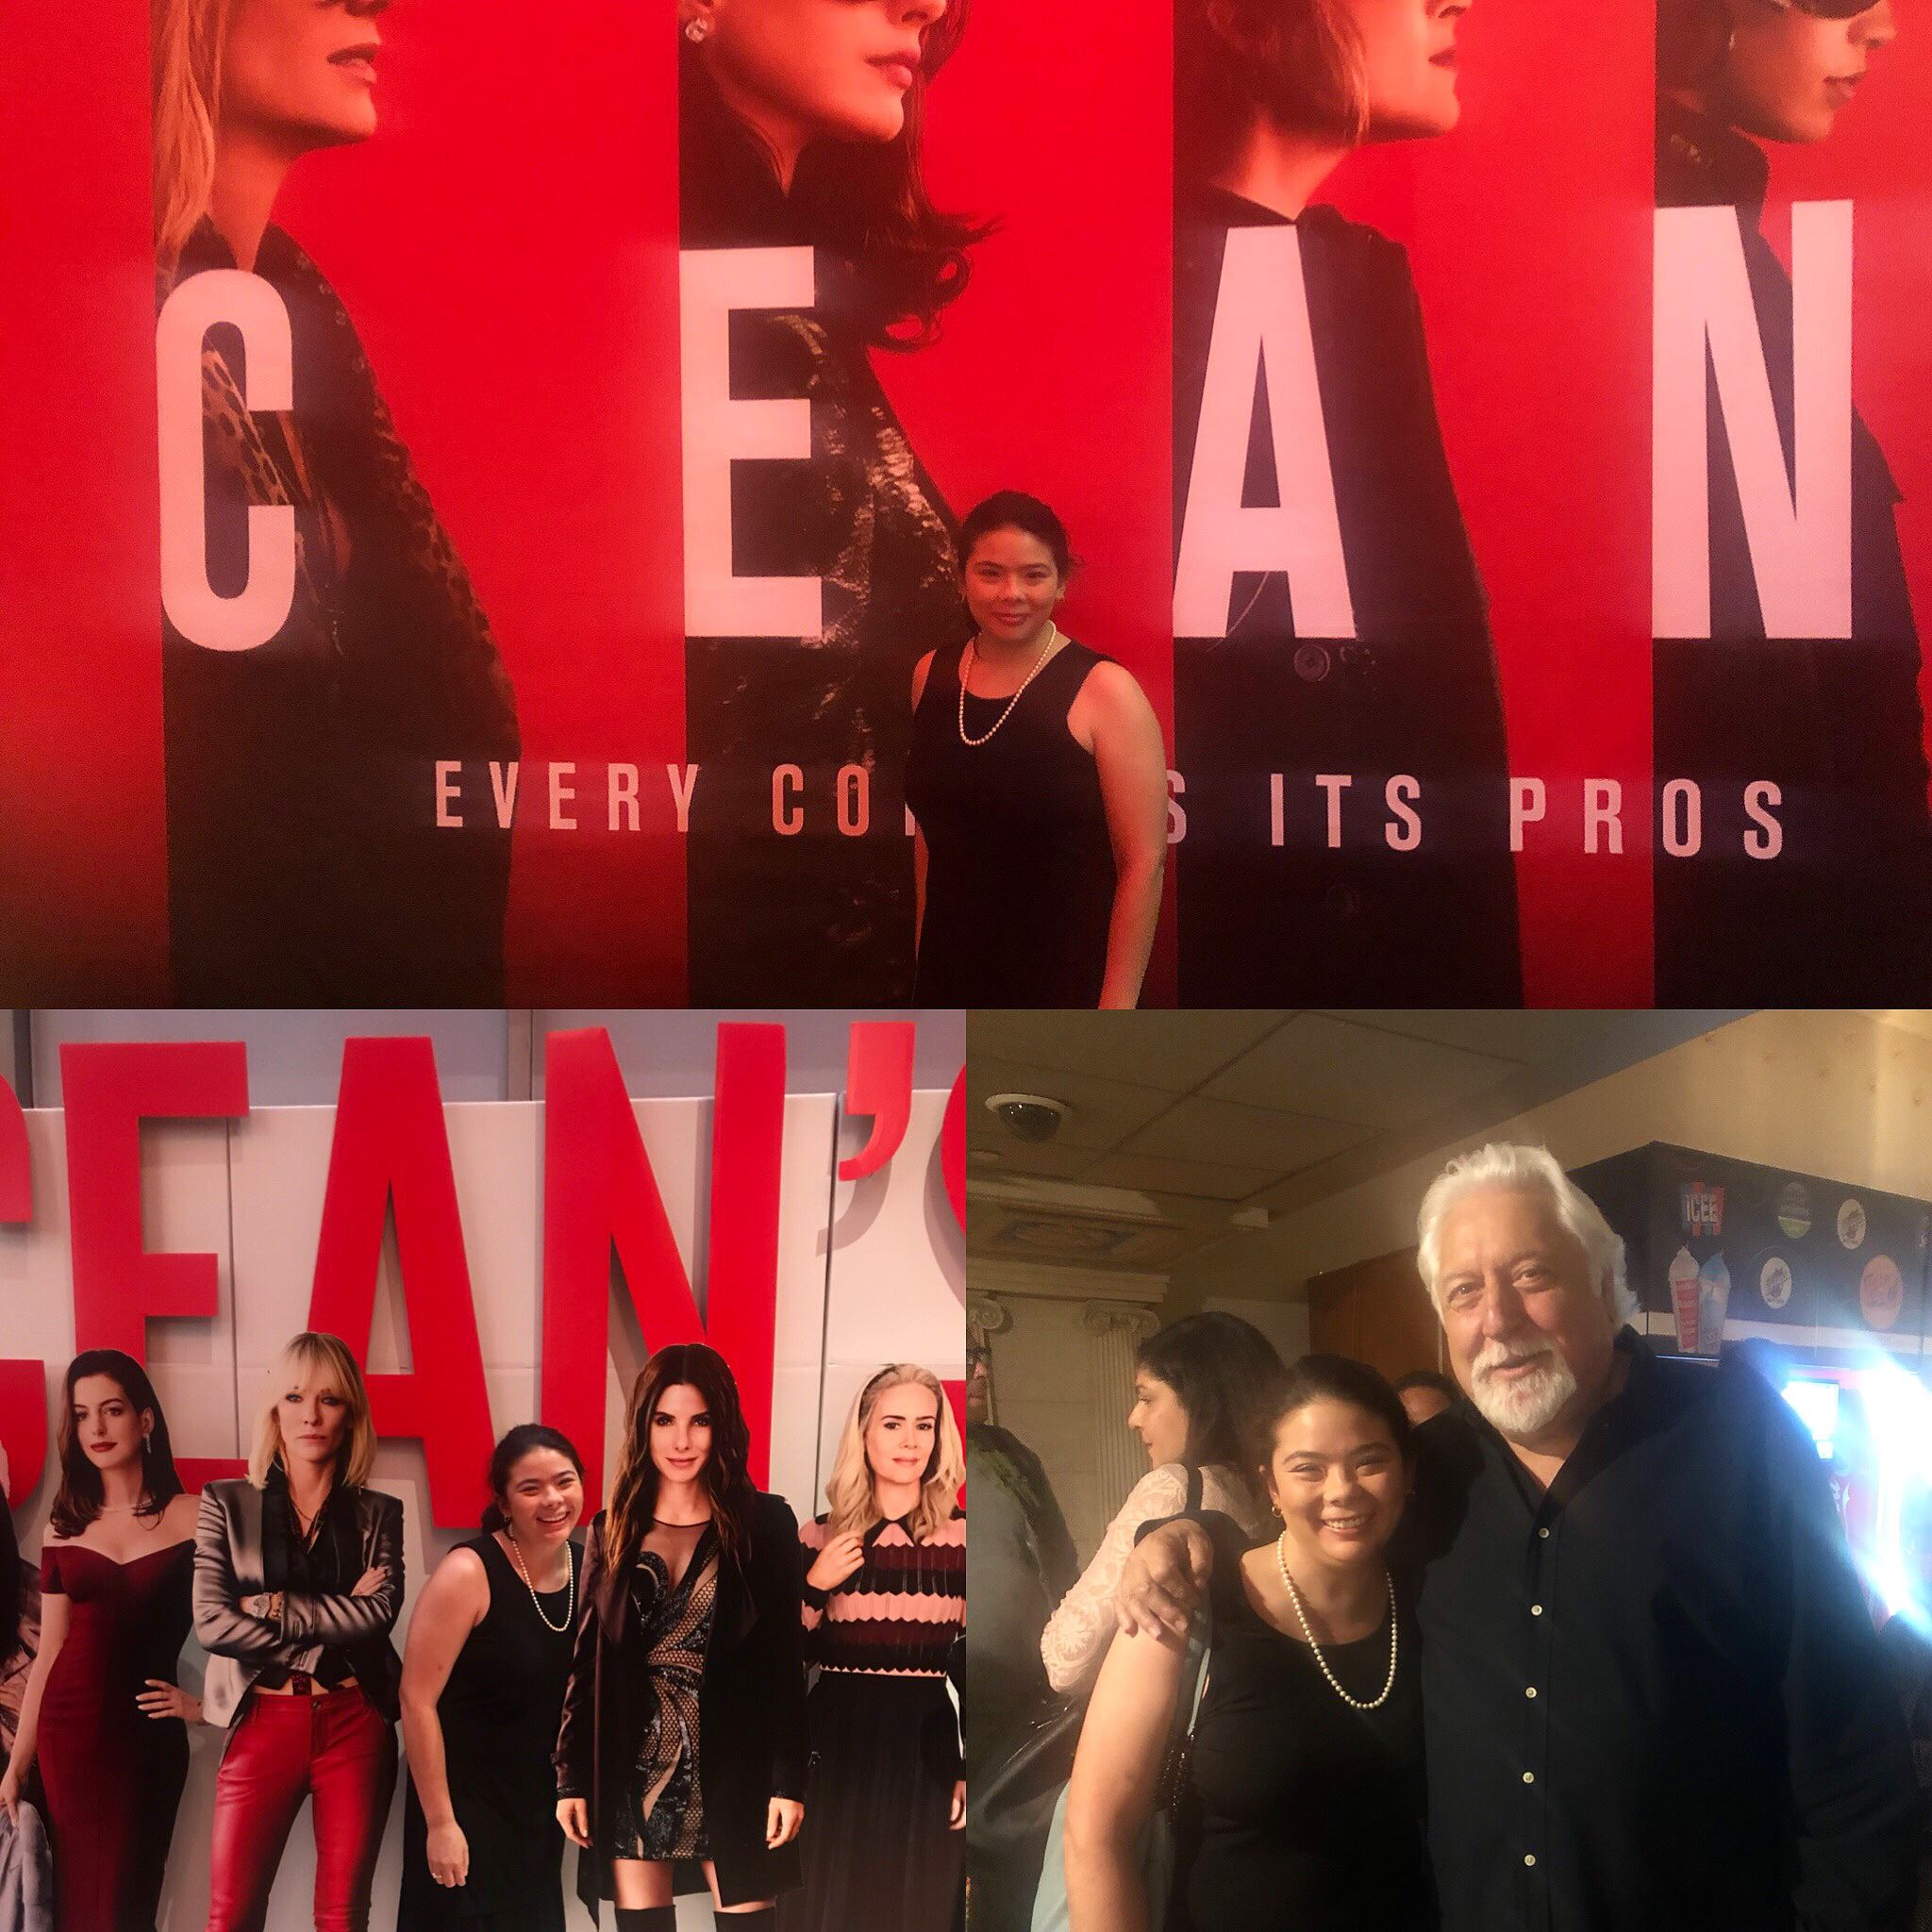 - Last year, I was on a closed set with the amazing Sandra Bullock, director Gary Ross (Hunger Games), producer Mike Tadross (pictured), and some of the best crew members in the industry. Last night, I got to watch myself on the big screen at the Ocean's 8 premiere! So so grateful for the opportunity and honored to be a part of this extremely fun film! Dreams do come true! Go see Ocean's 8!